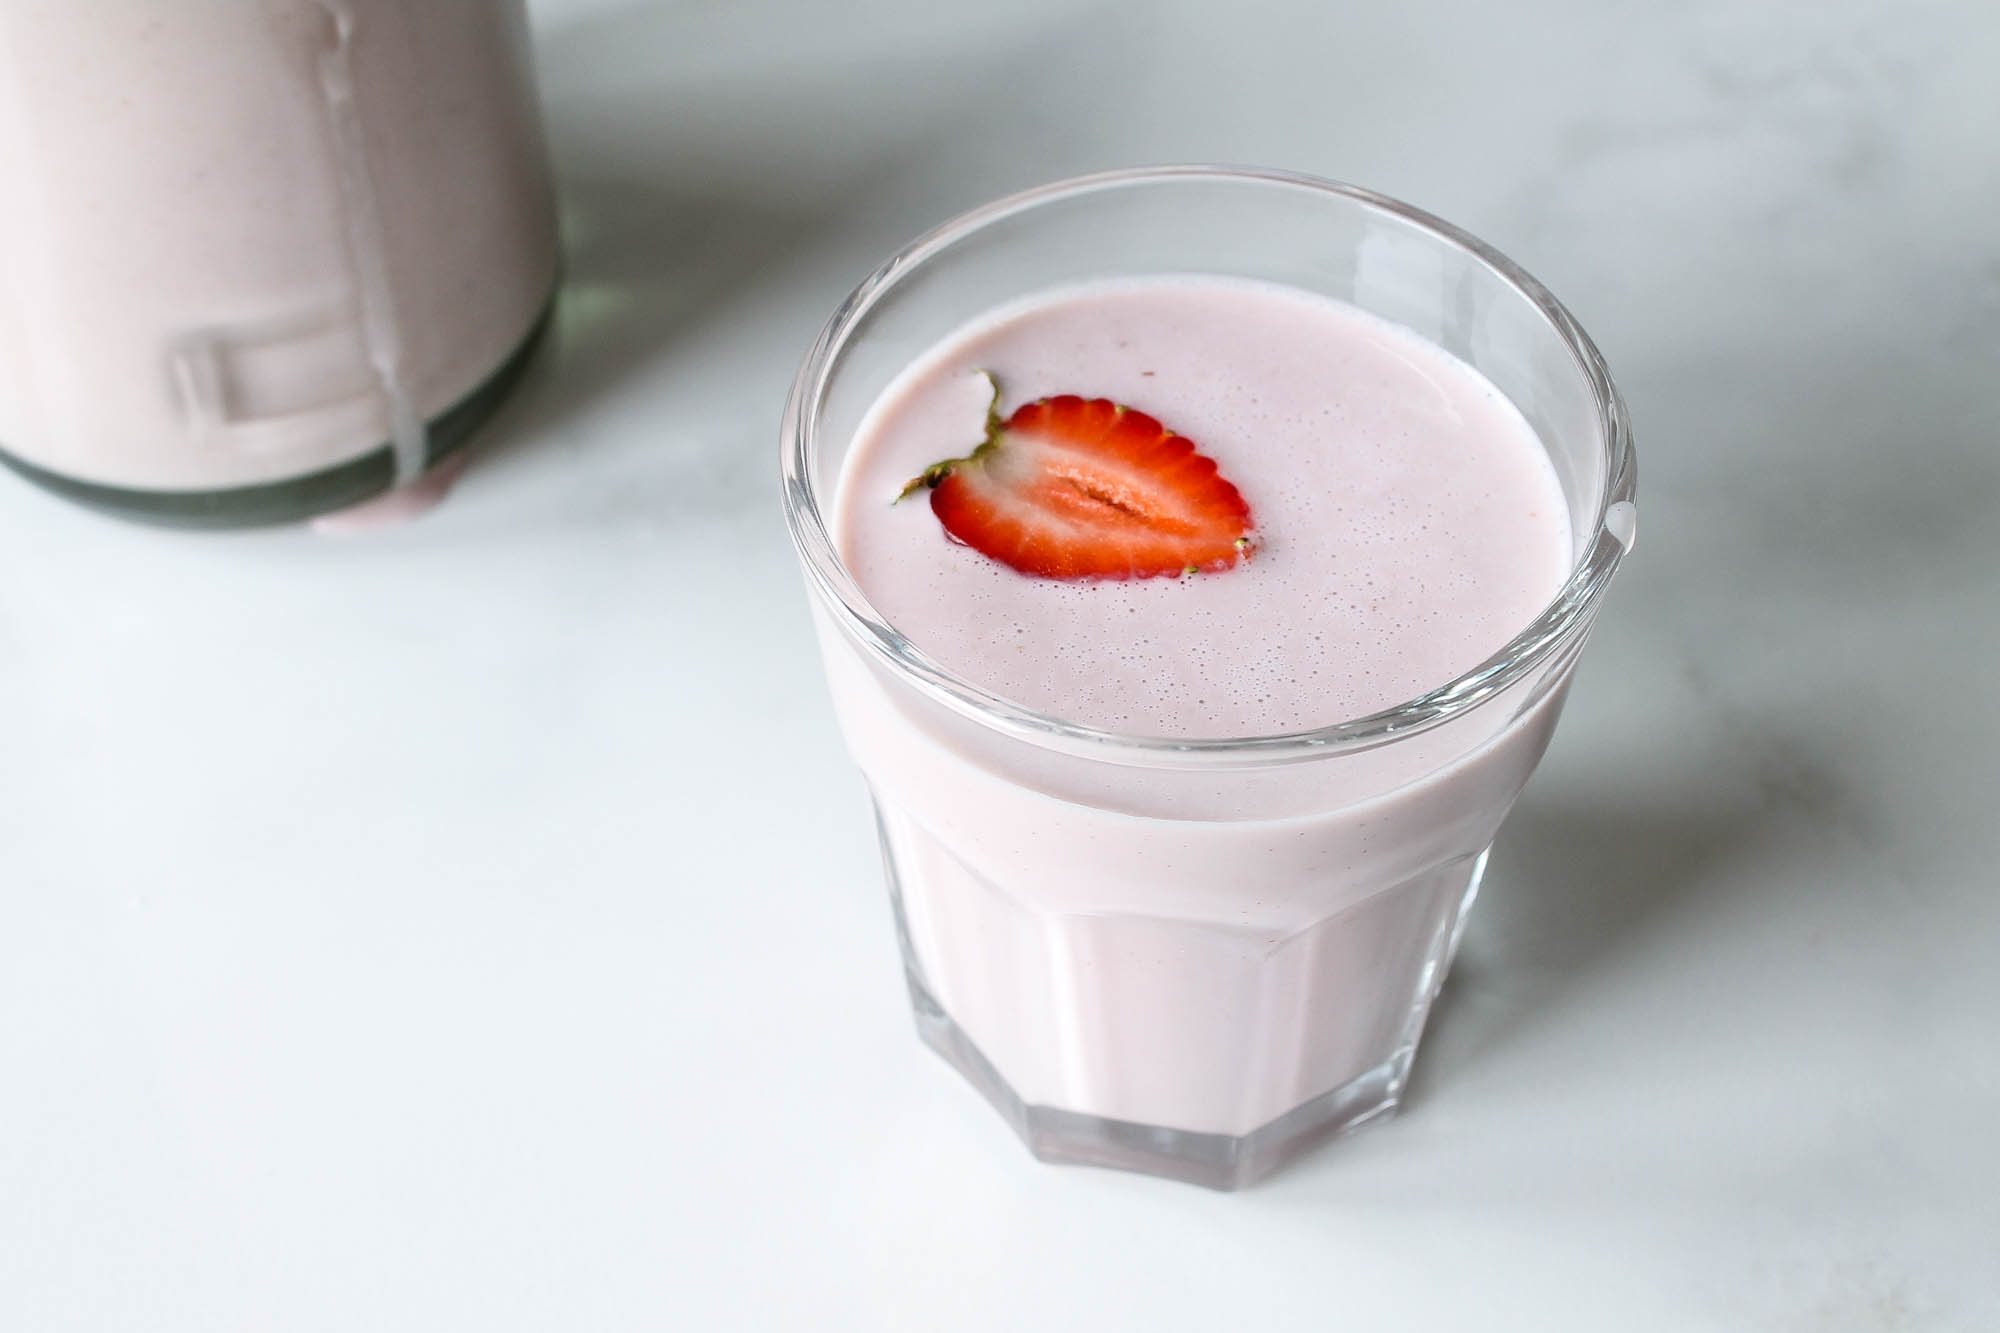 Strawberry Cashew Milk || All natural plant based nut milk made with fresh strawberries and no refined sugars. Delicious on its own at breakfast or poured over granola as a snack. Dairy free + vegan. || creamandhoney.ca